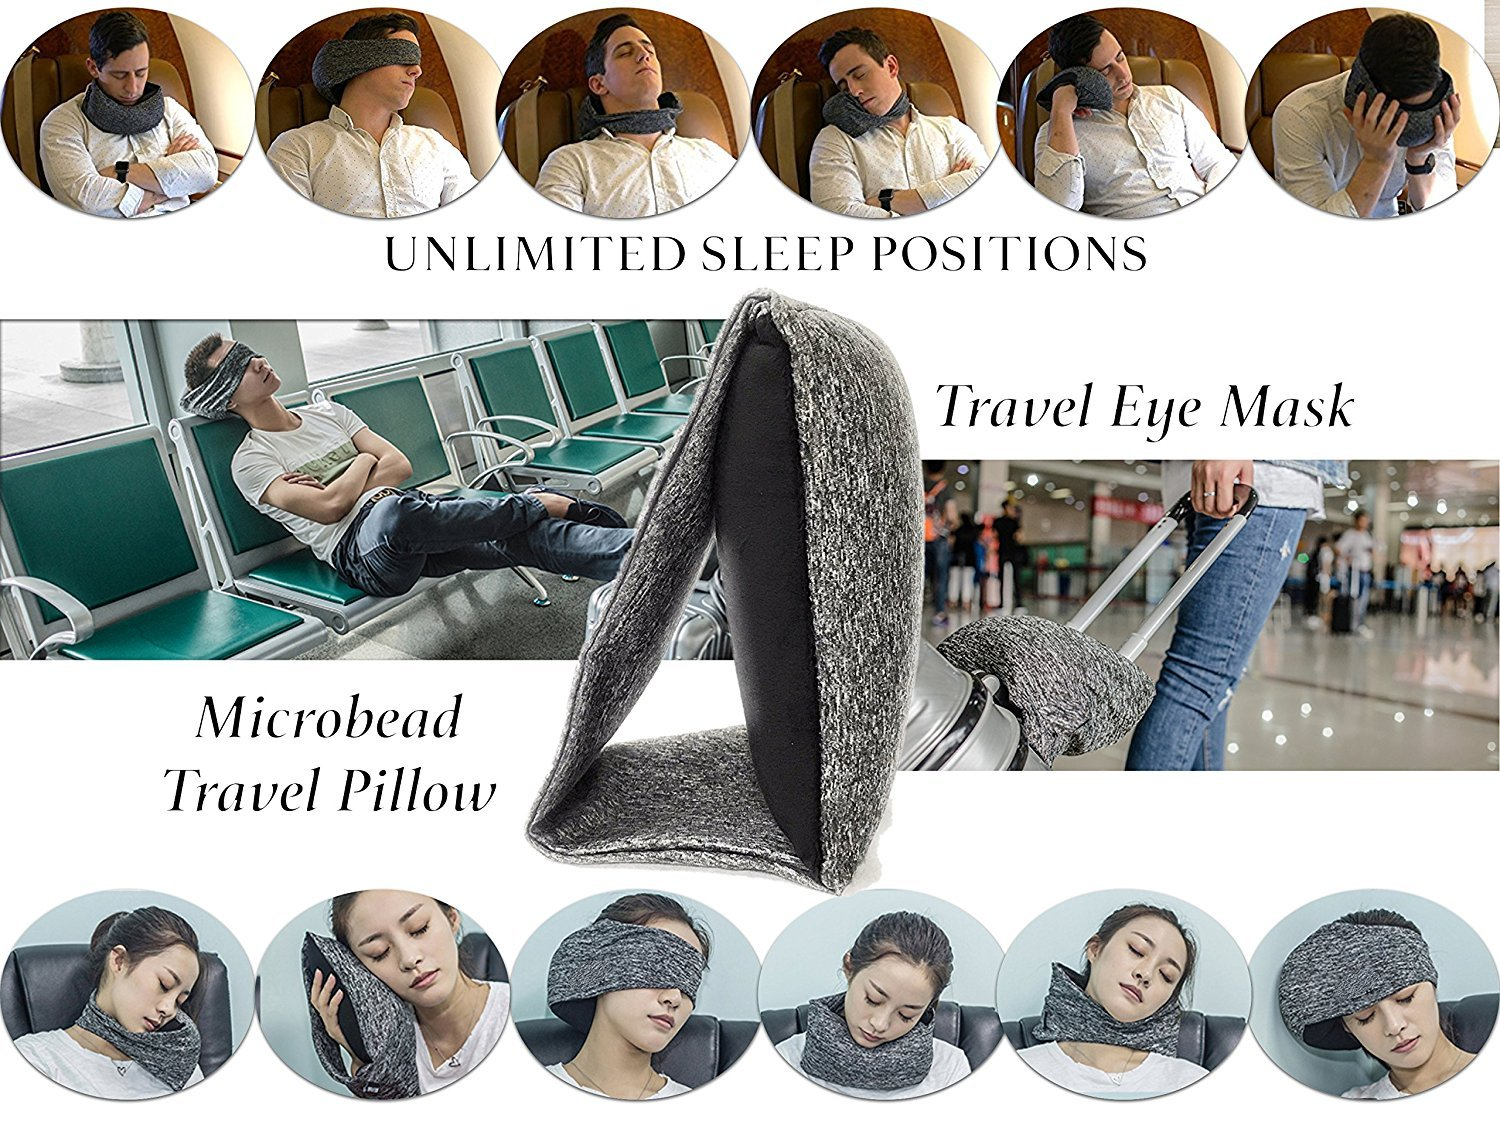 Eye Mask Travel Pillow - Super Pillowy & Easy Carry For Flights,Cars Sleep Easy in Any Position